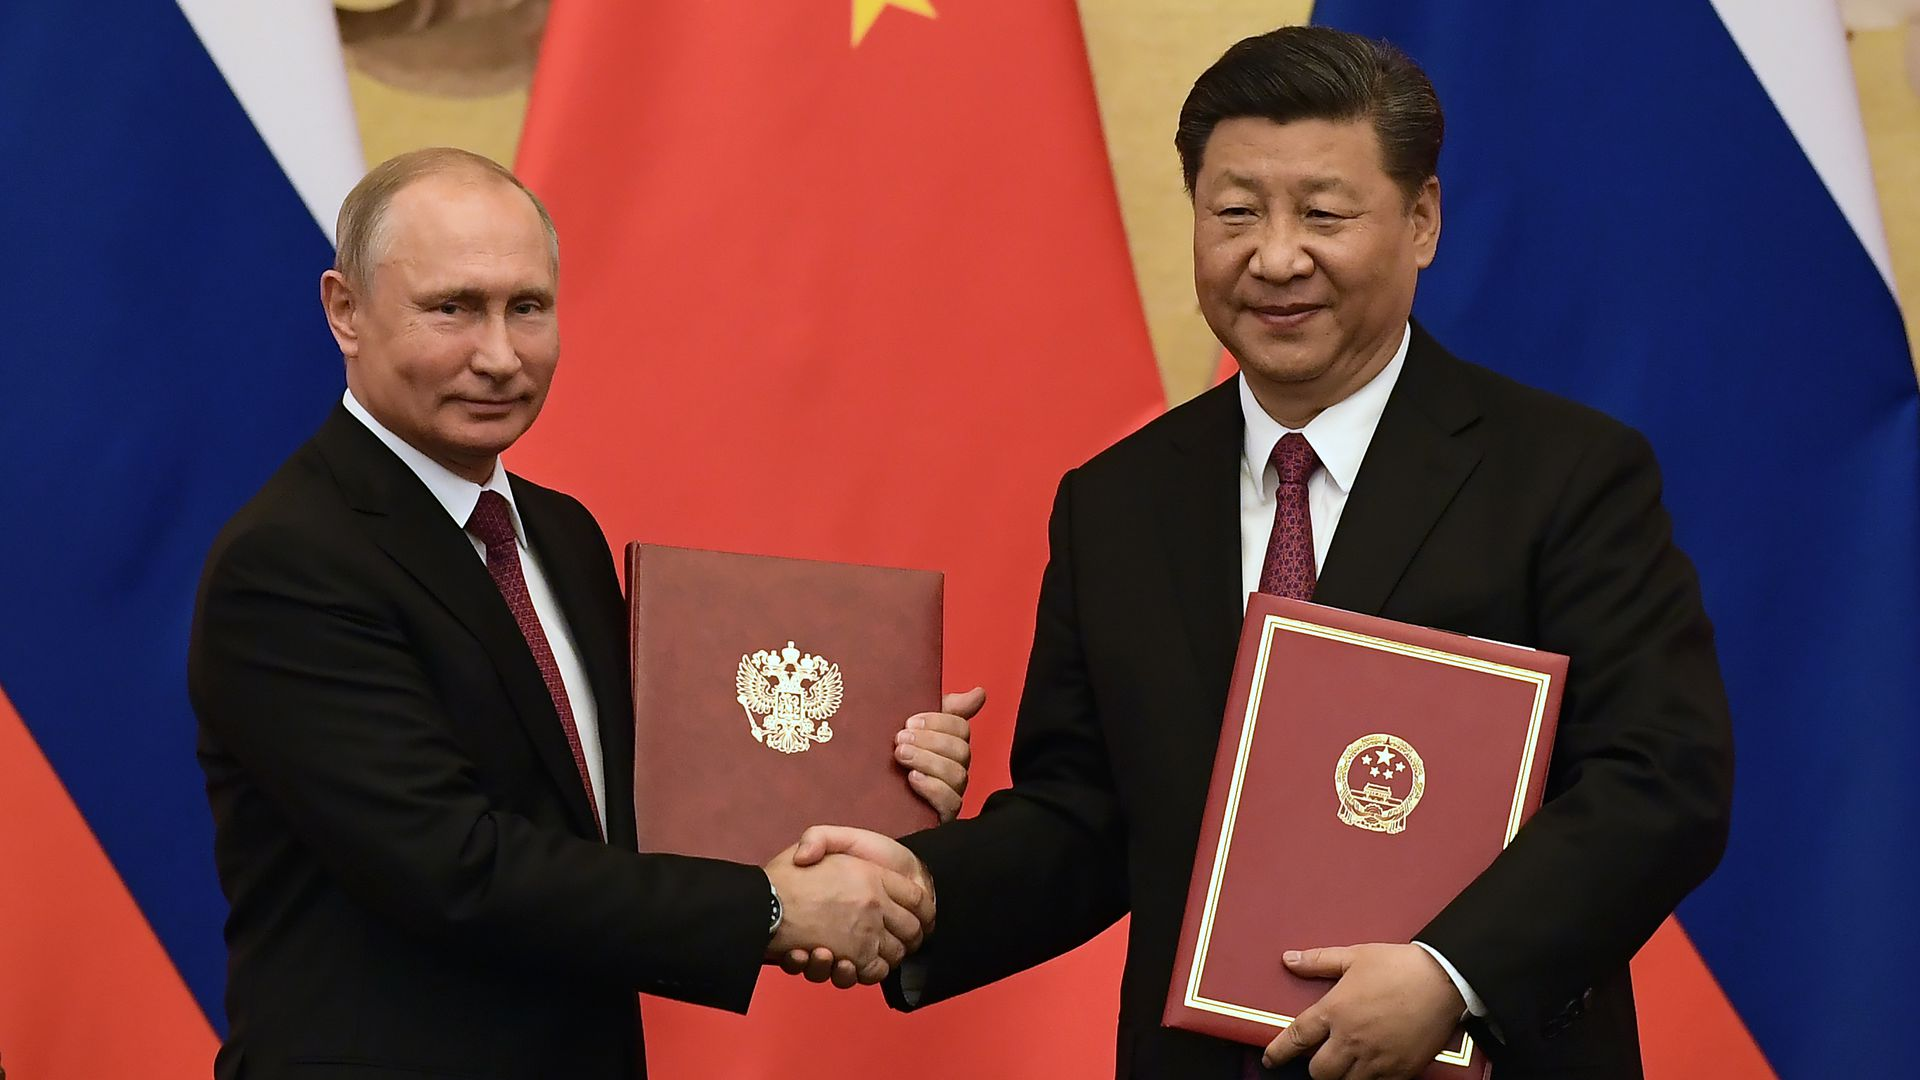 Chinese President Jinping congratulates Russian President Putin after presenting him with the Friendship Medal